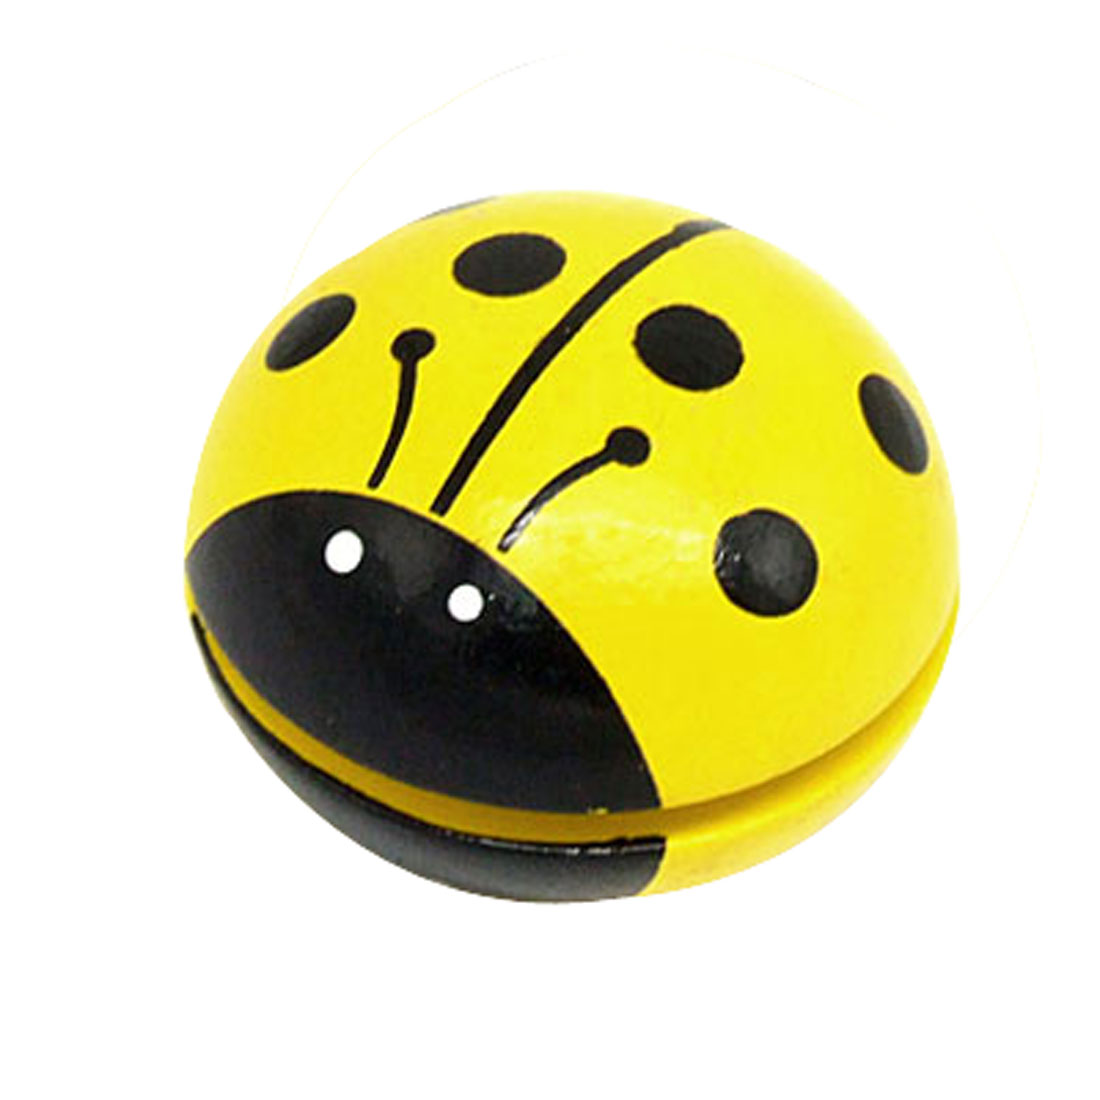 Yellow Ladybird Shaped Wooden Yo-Yo Toy for Children